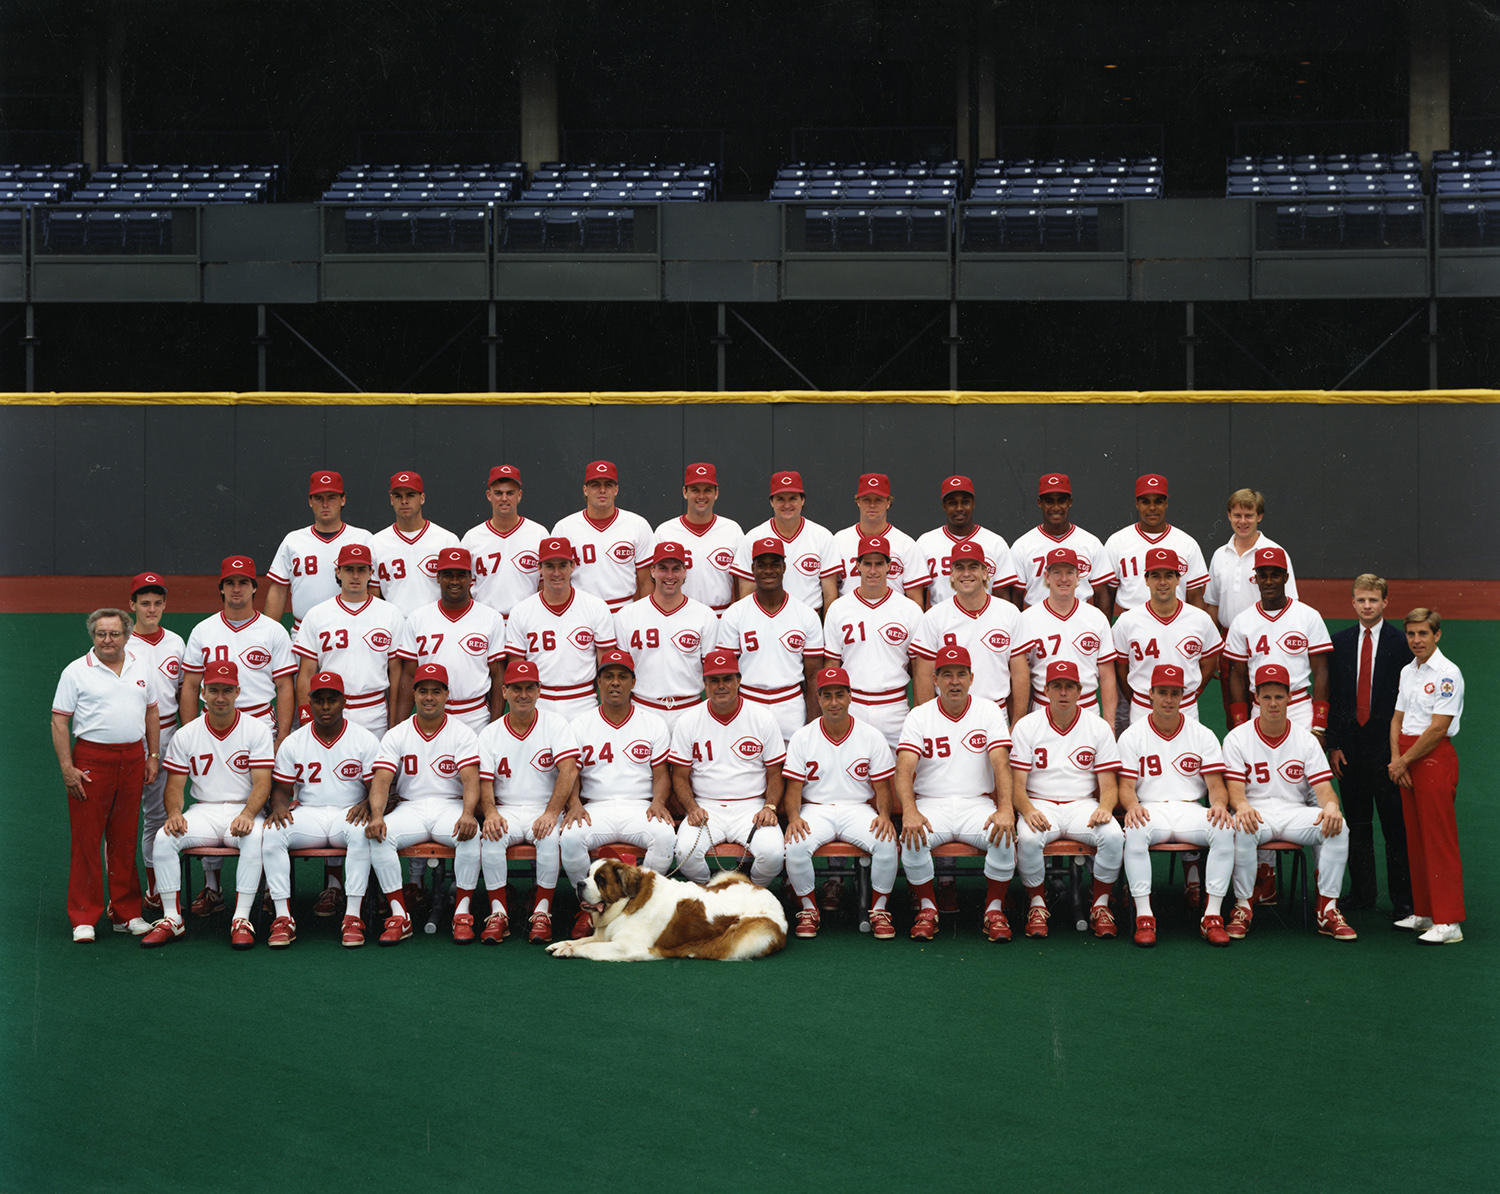 The 1990 Cincinnati Reds, pictured above, would go on to win the World Series title that year. (National Baseball Hall of Fame and Museum)